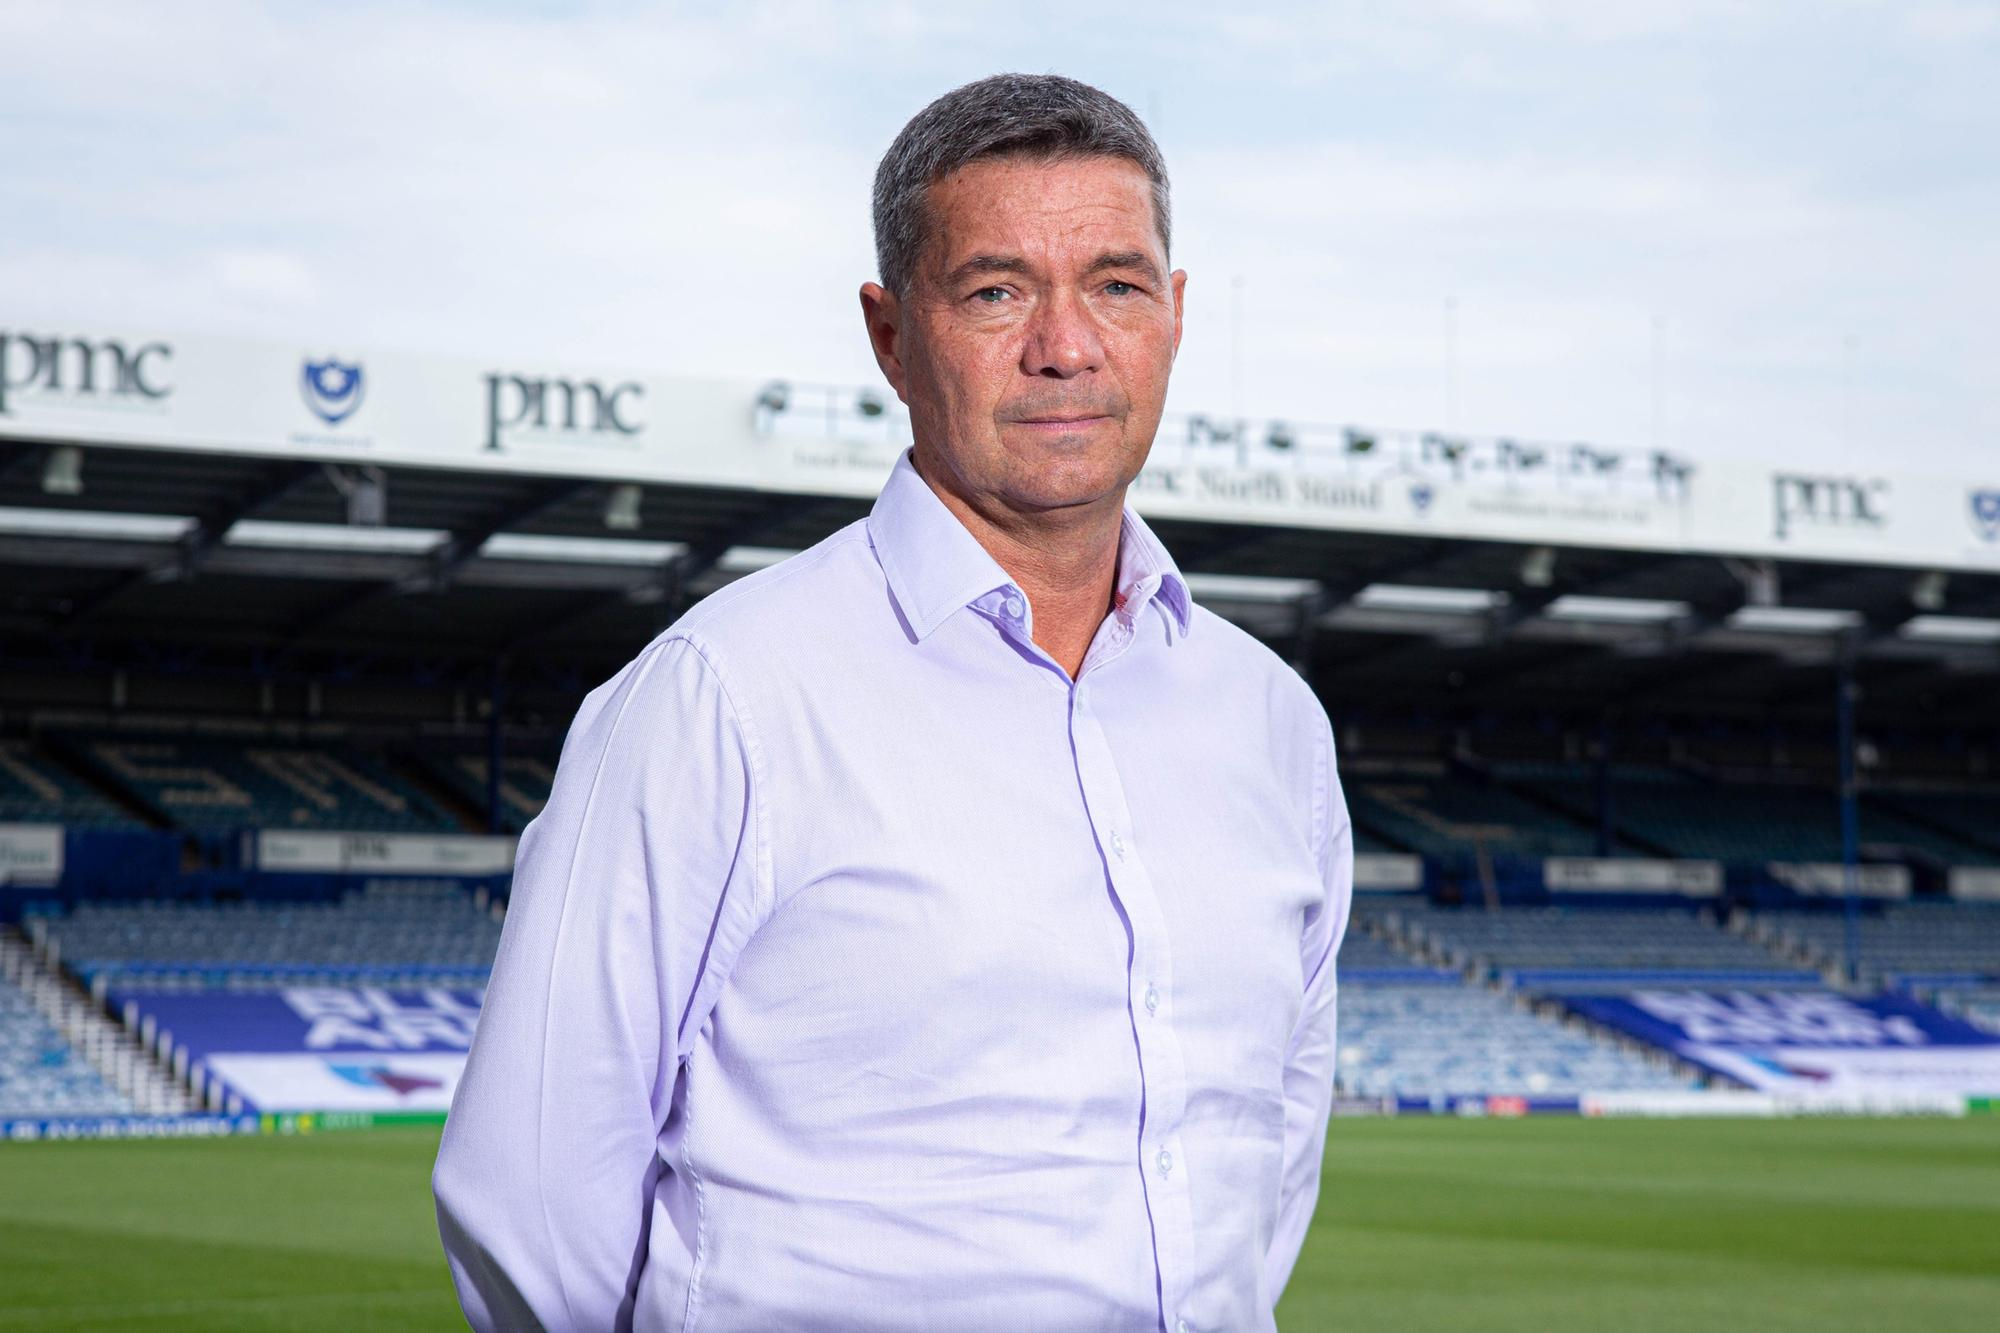 Catlin's concerns over how bailout could hamper Pompey and likes of Sunderland, Ipswich Town, Peterborough and Hull City